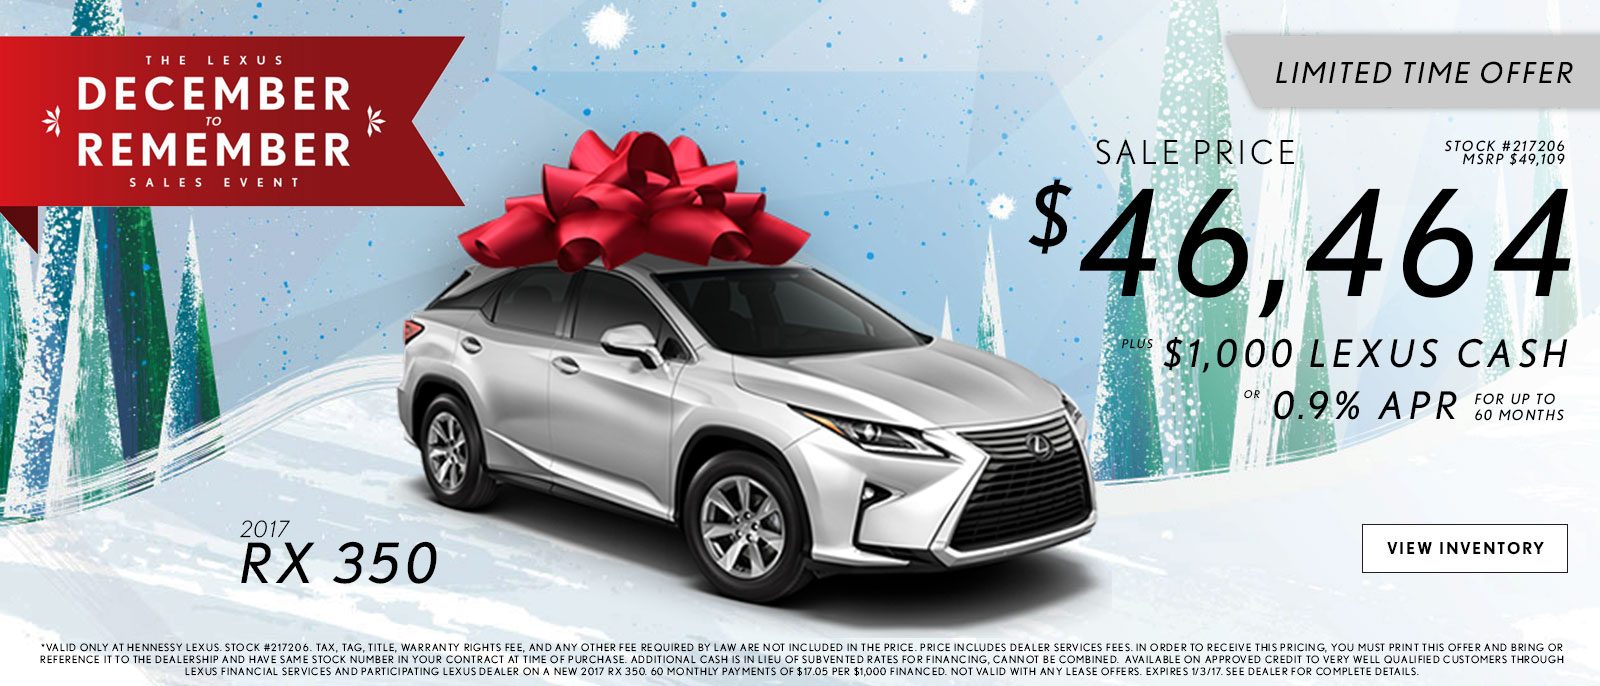 Lexus December to Remember RX Offers